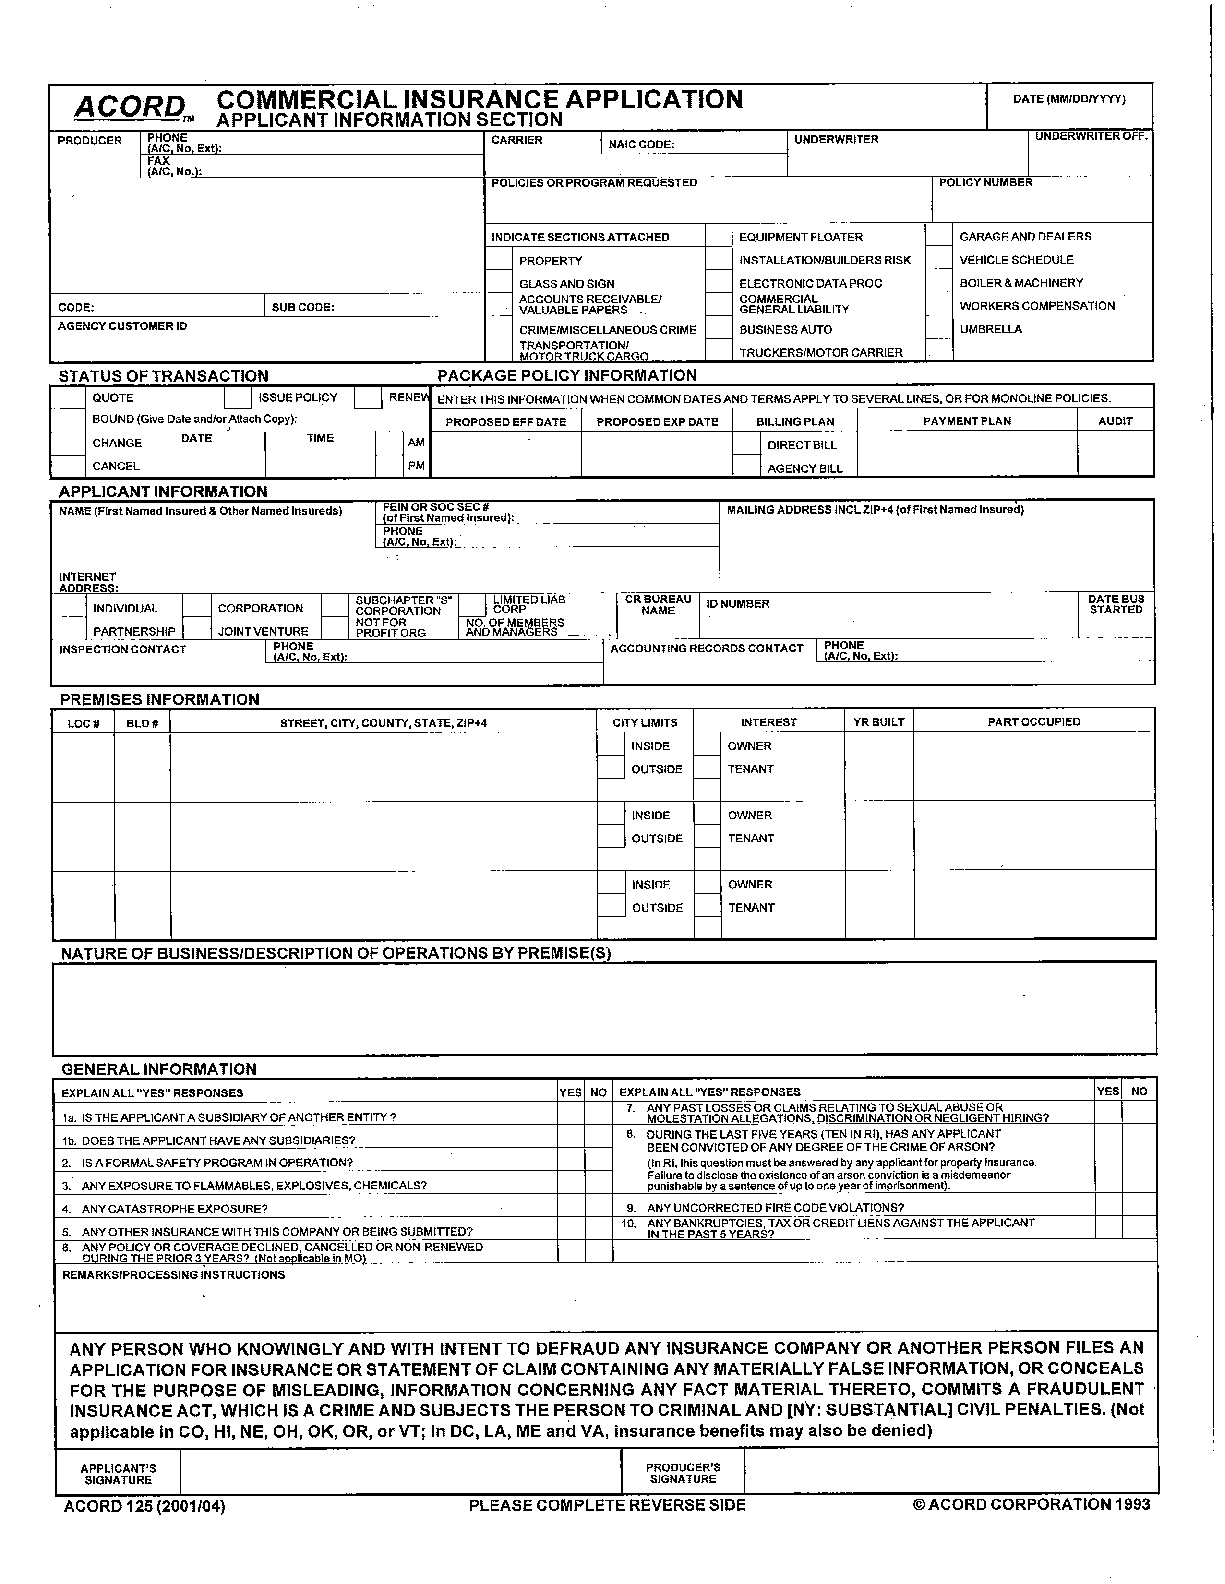 Acord 125 Commercial Insurance Application 126 Commercial Form